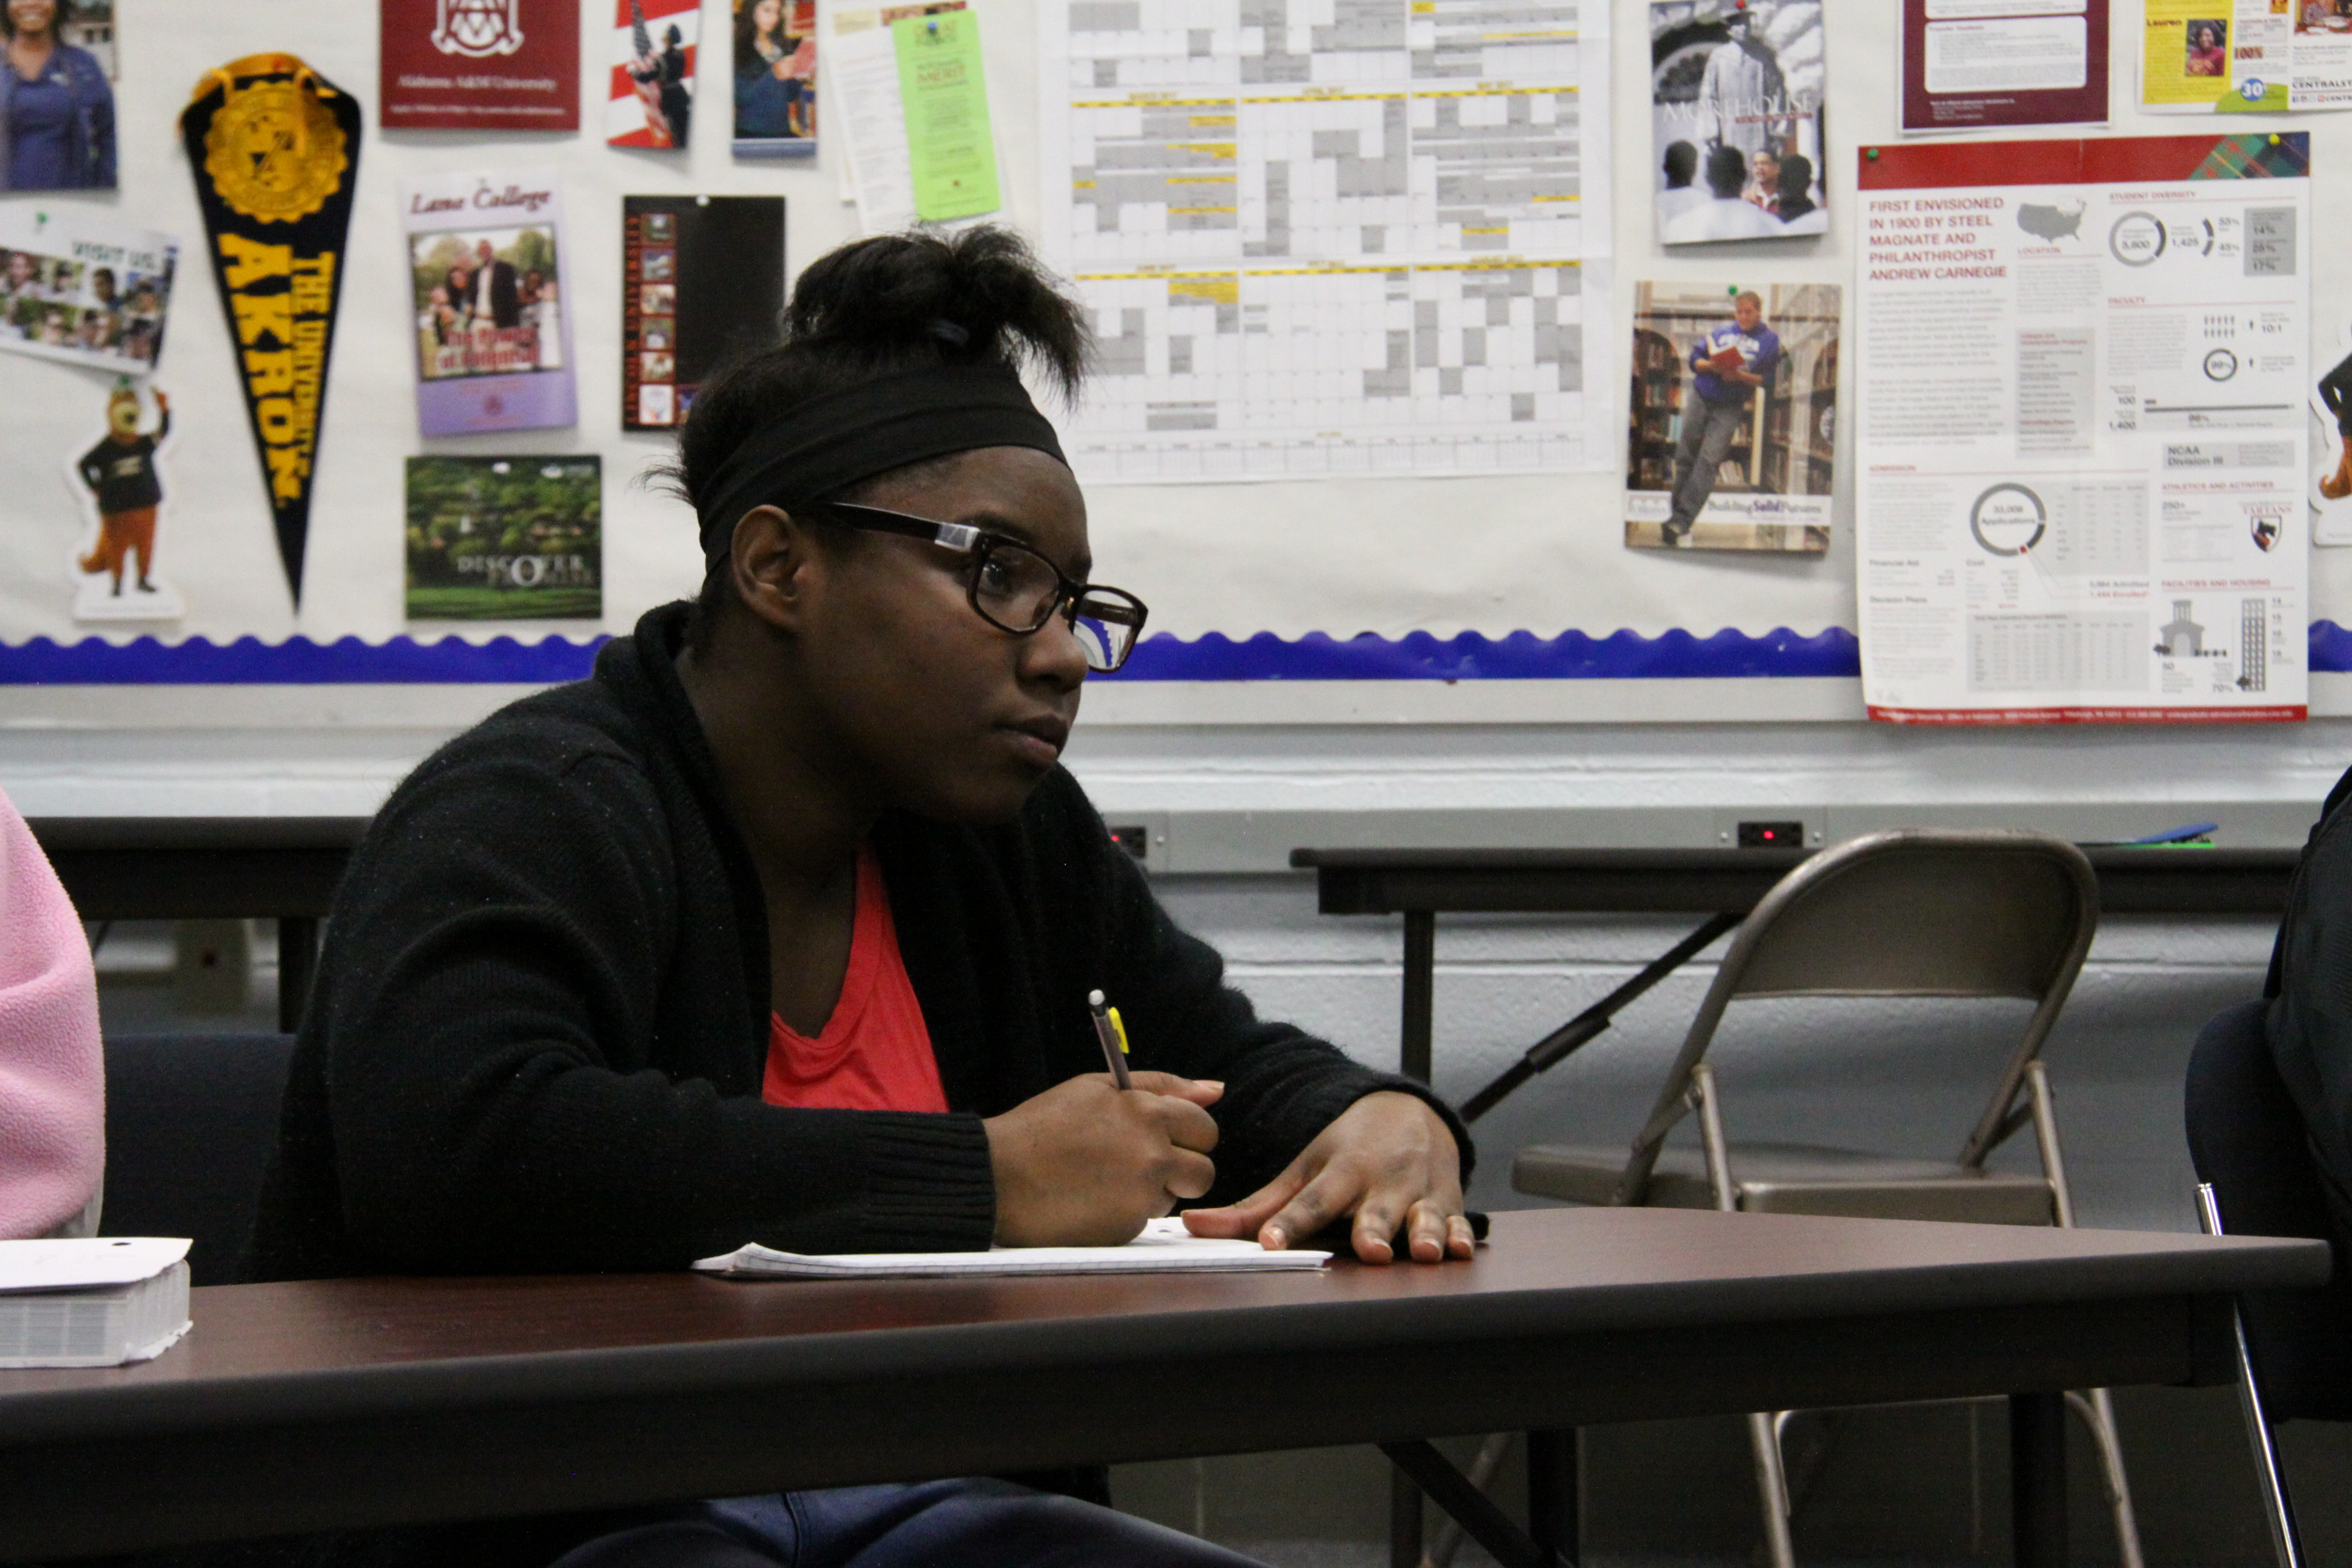 Aliah Barker, 17, a senior at Jefferson High School in Ohio, is taking college classes while she is still in high school. (Kirk Carapezza/WGBH)